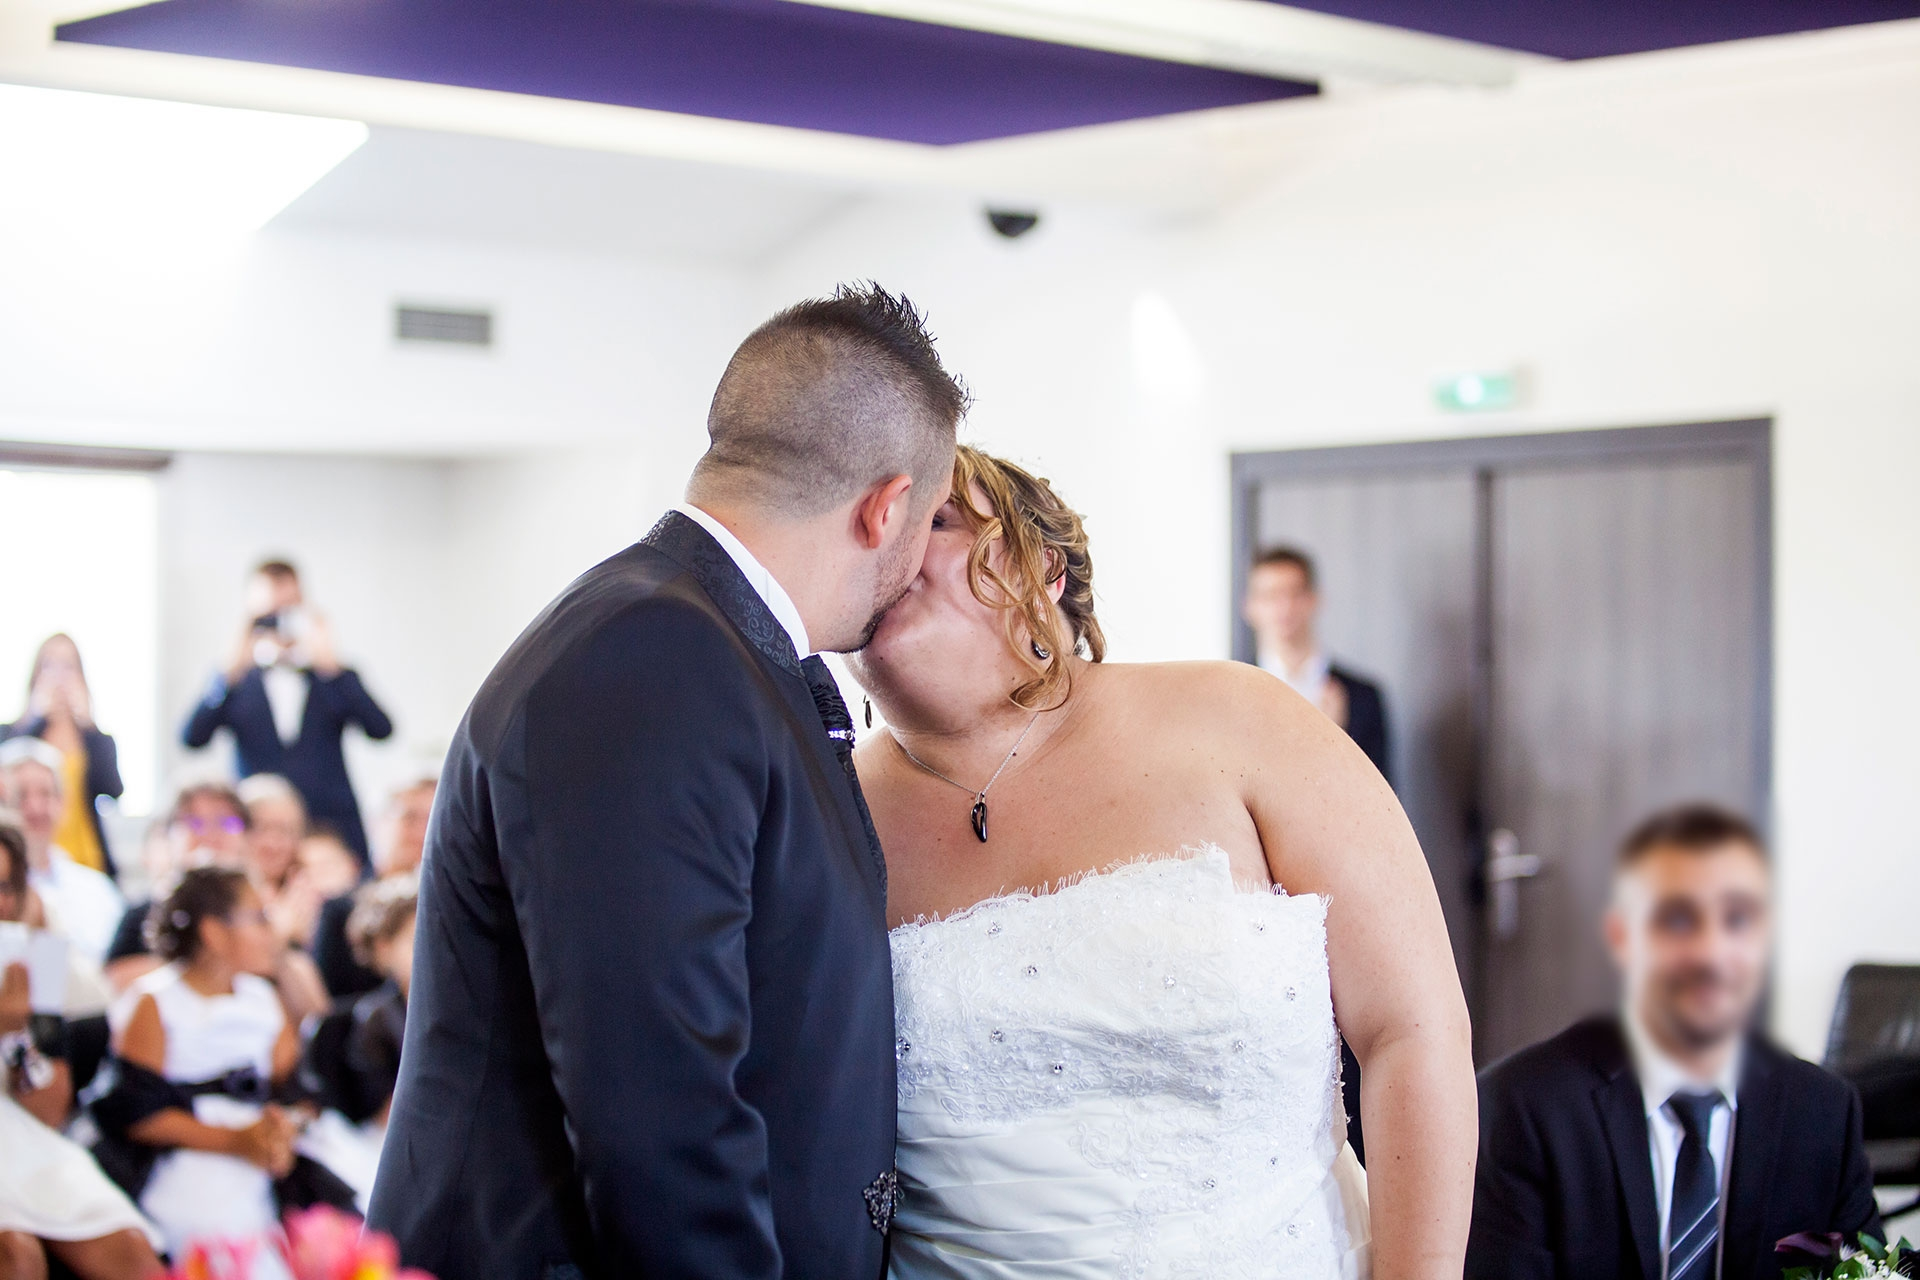 particuliers-evenements-mariages-oui-elodie&wilson-35